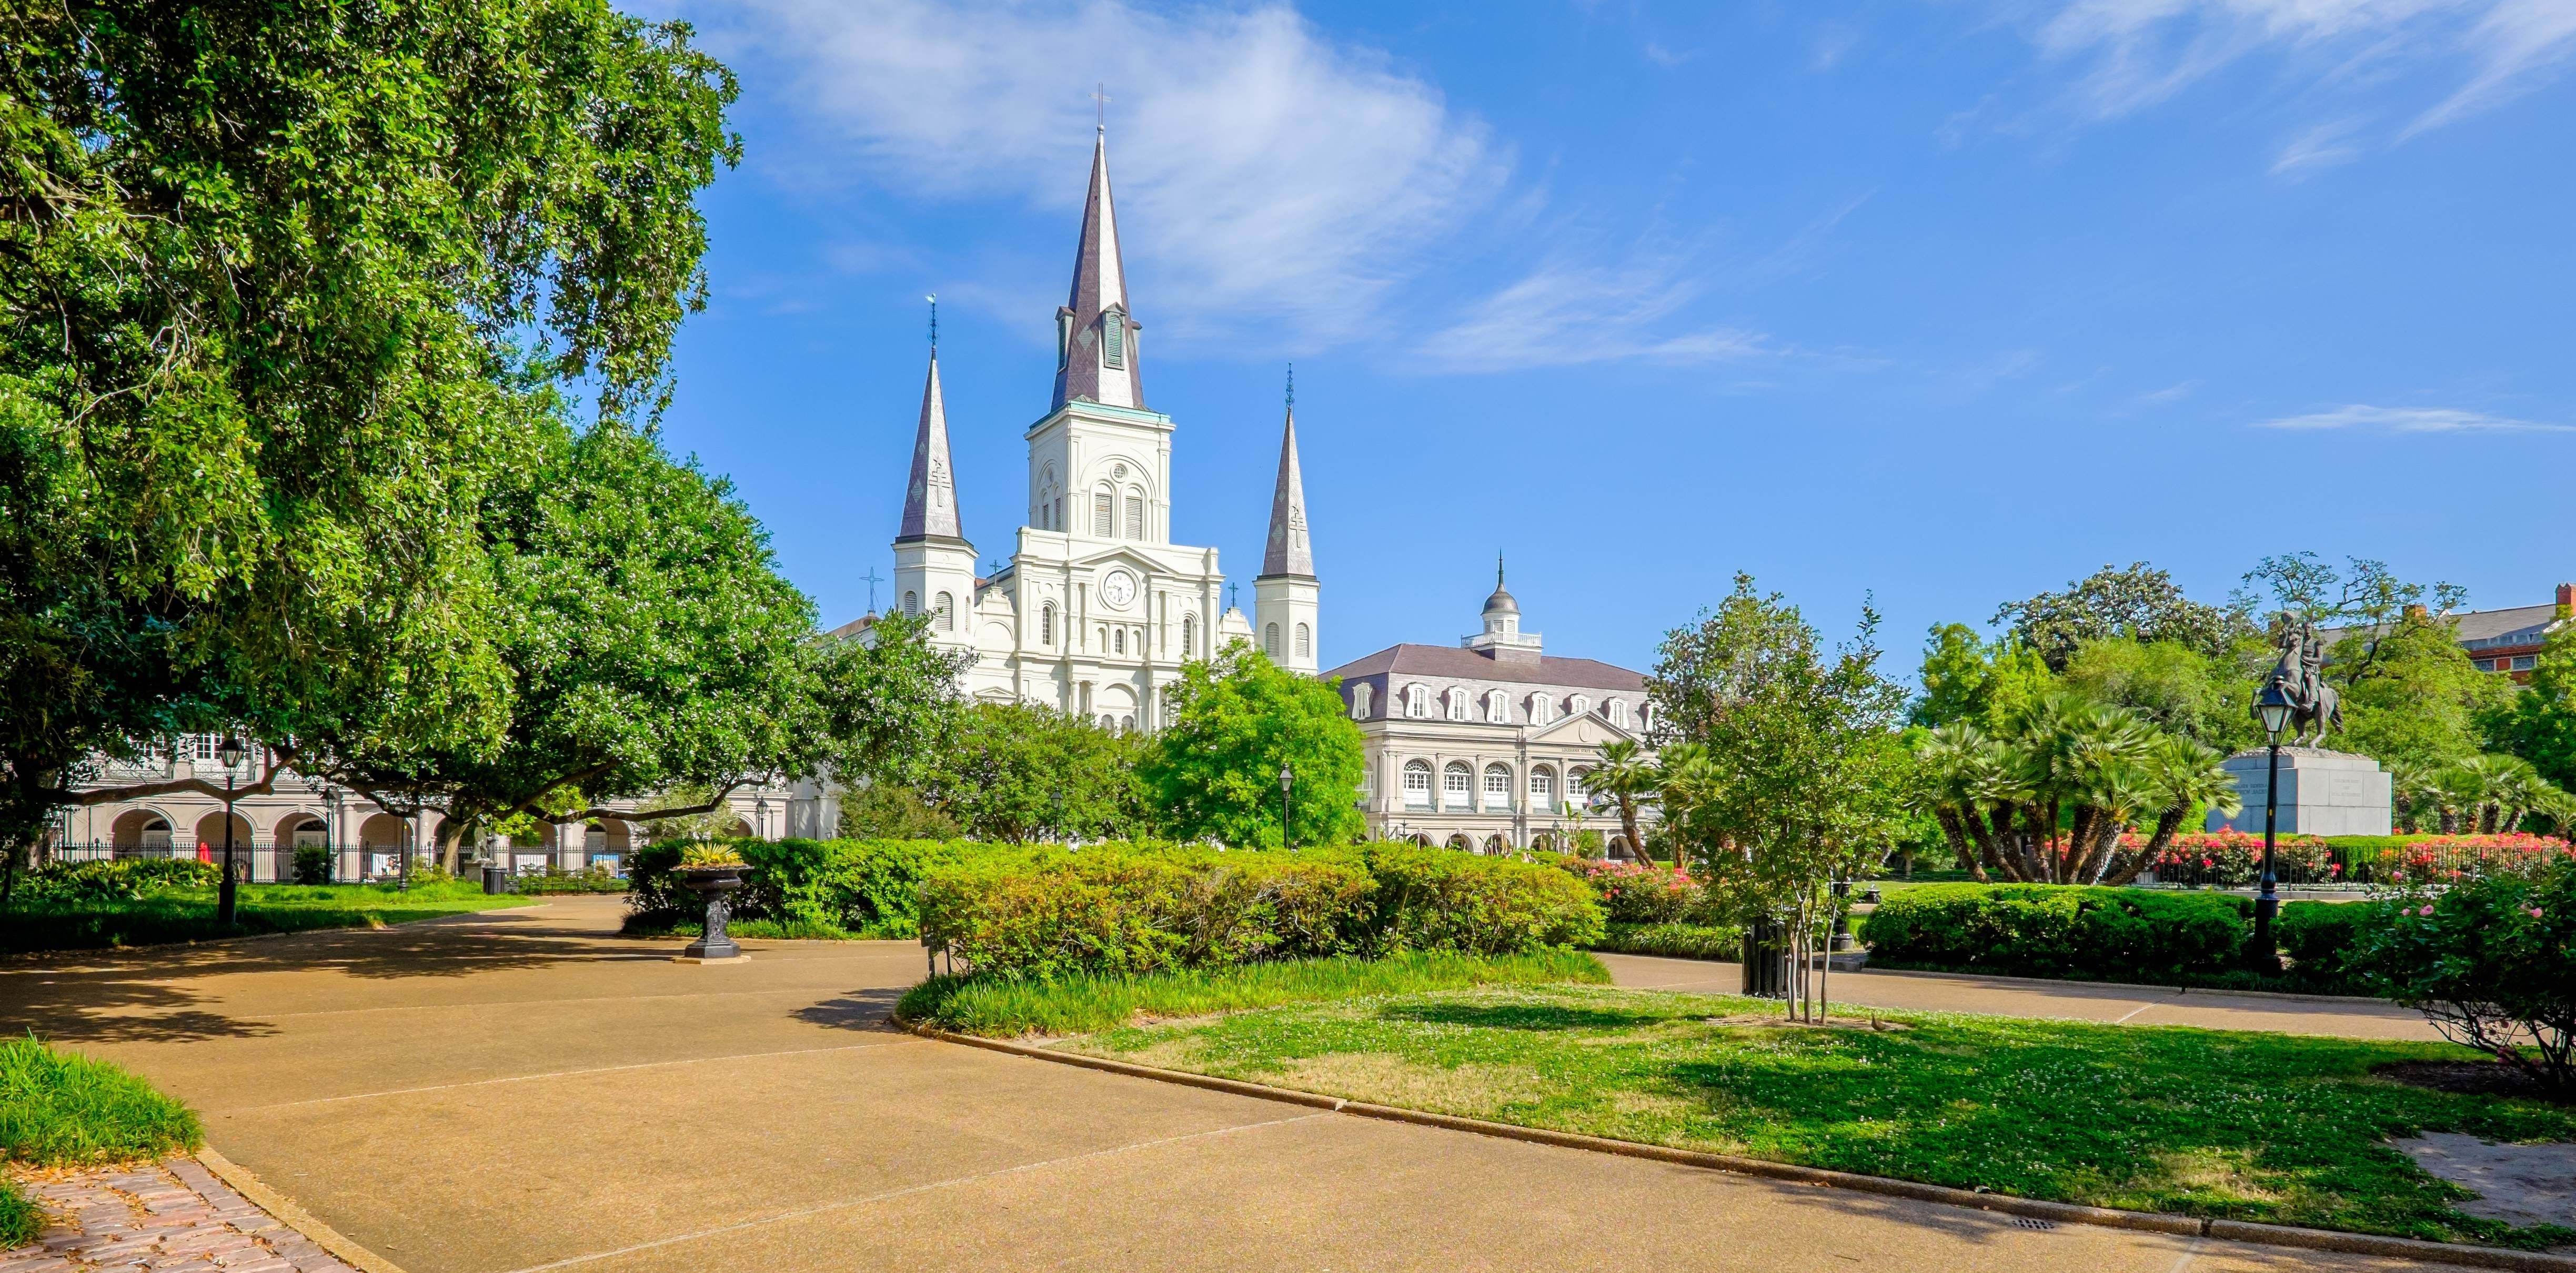 new-orleans-usa-iStock-494309149